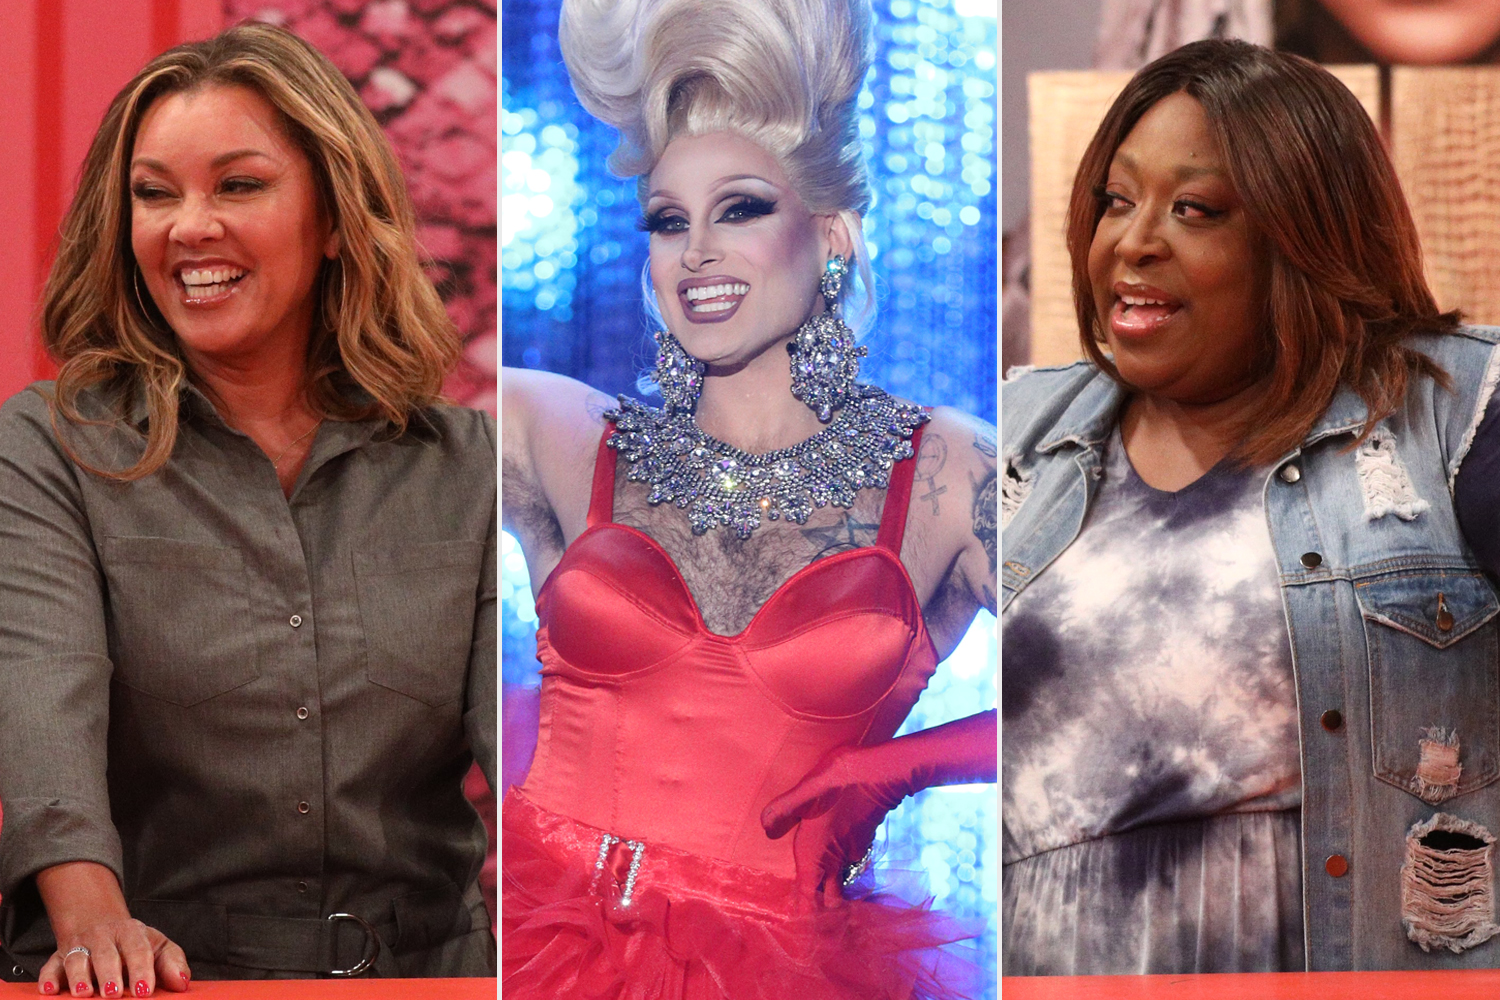 RuPaul's Celebrity Drag Race